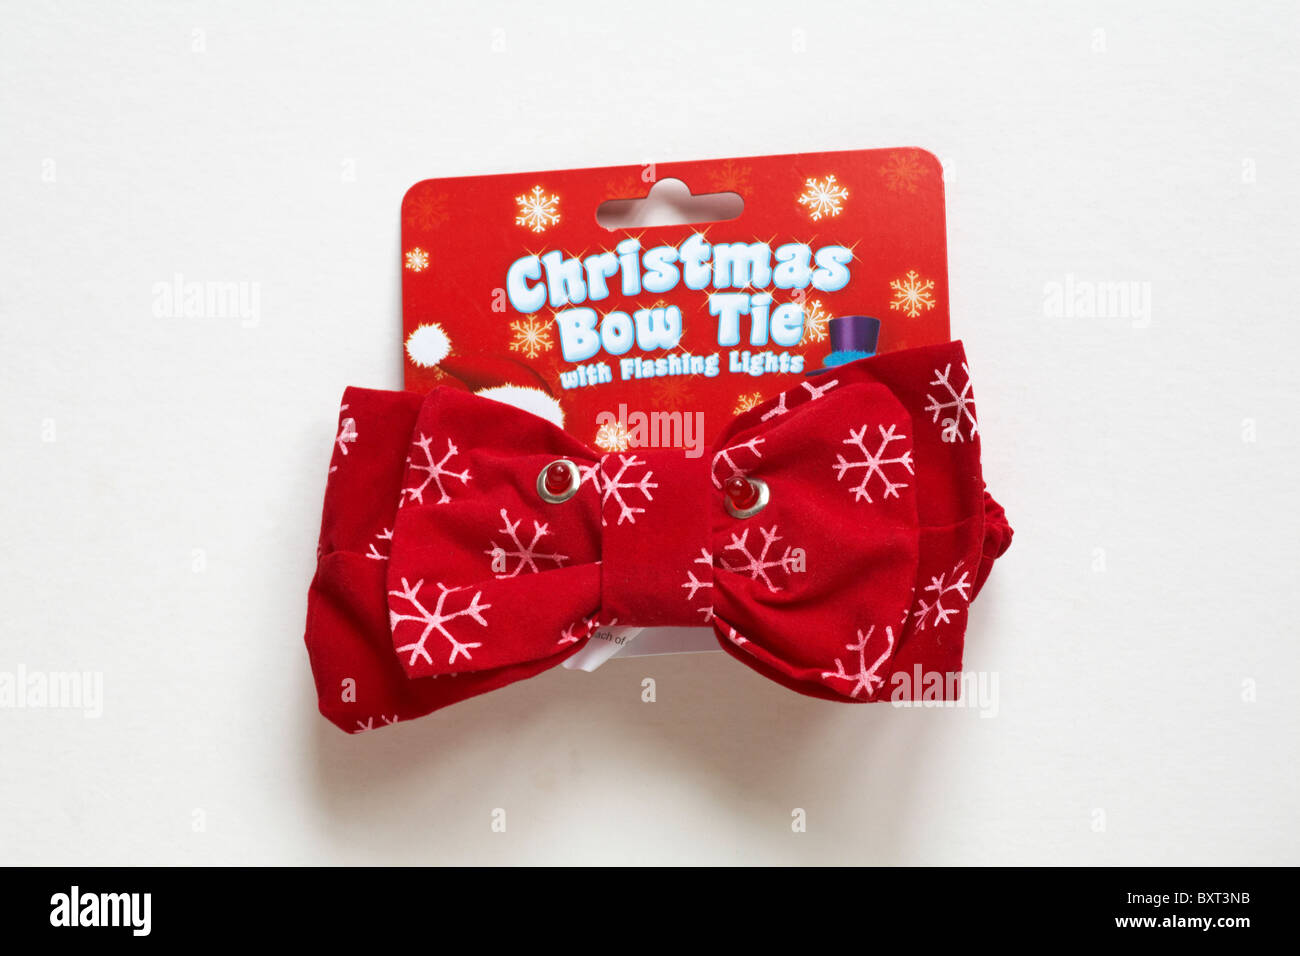 novelty christmas bow tie with flashing lights isolatged on white background stock image